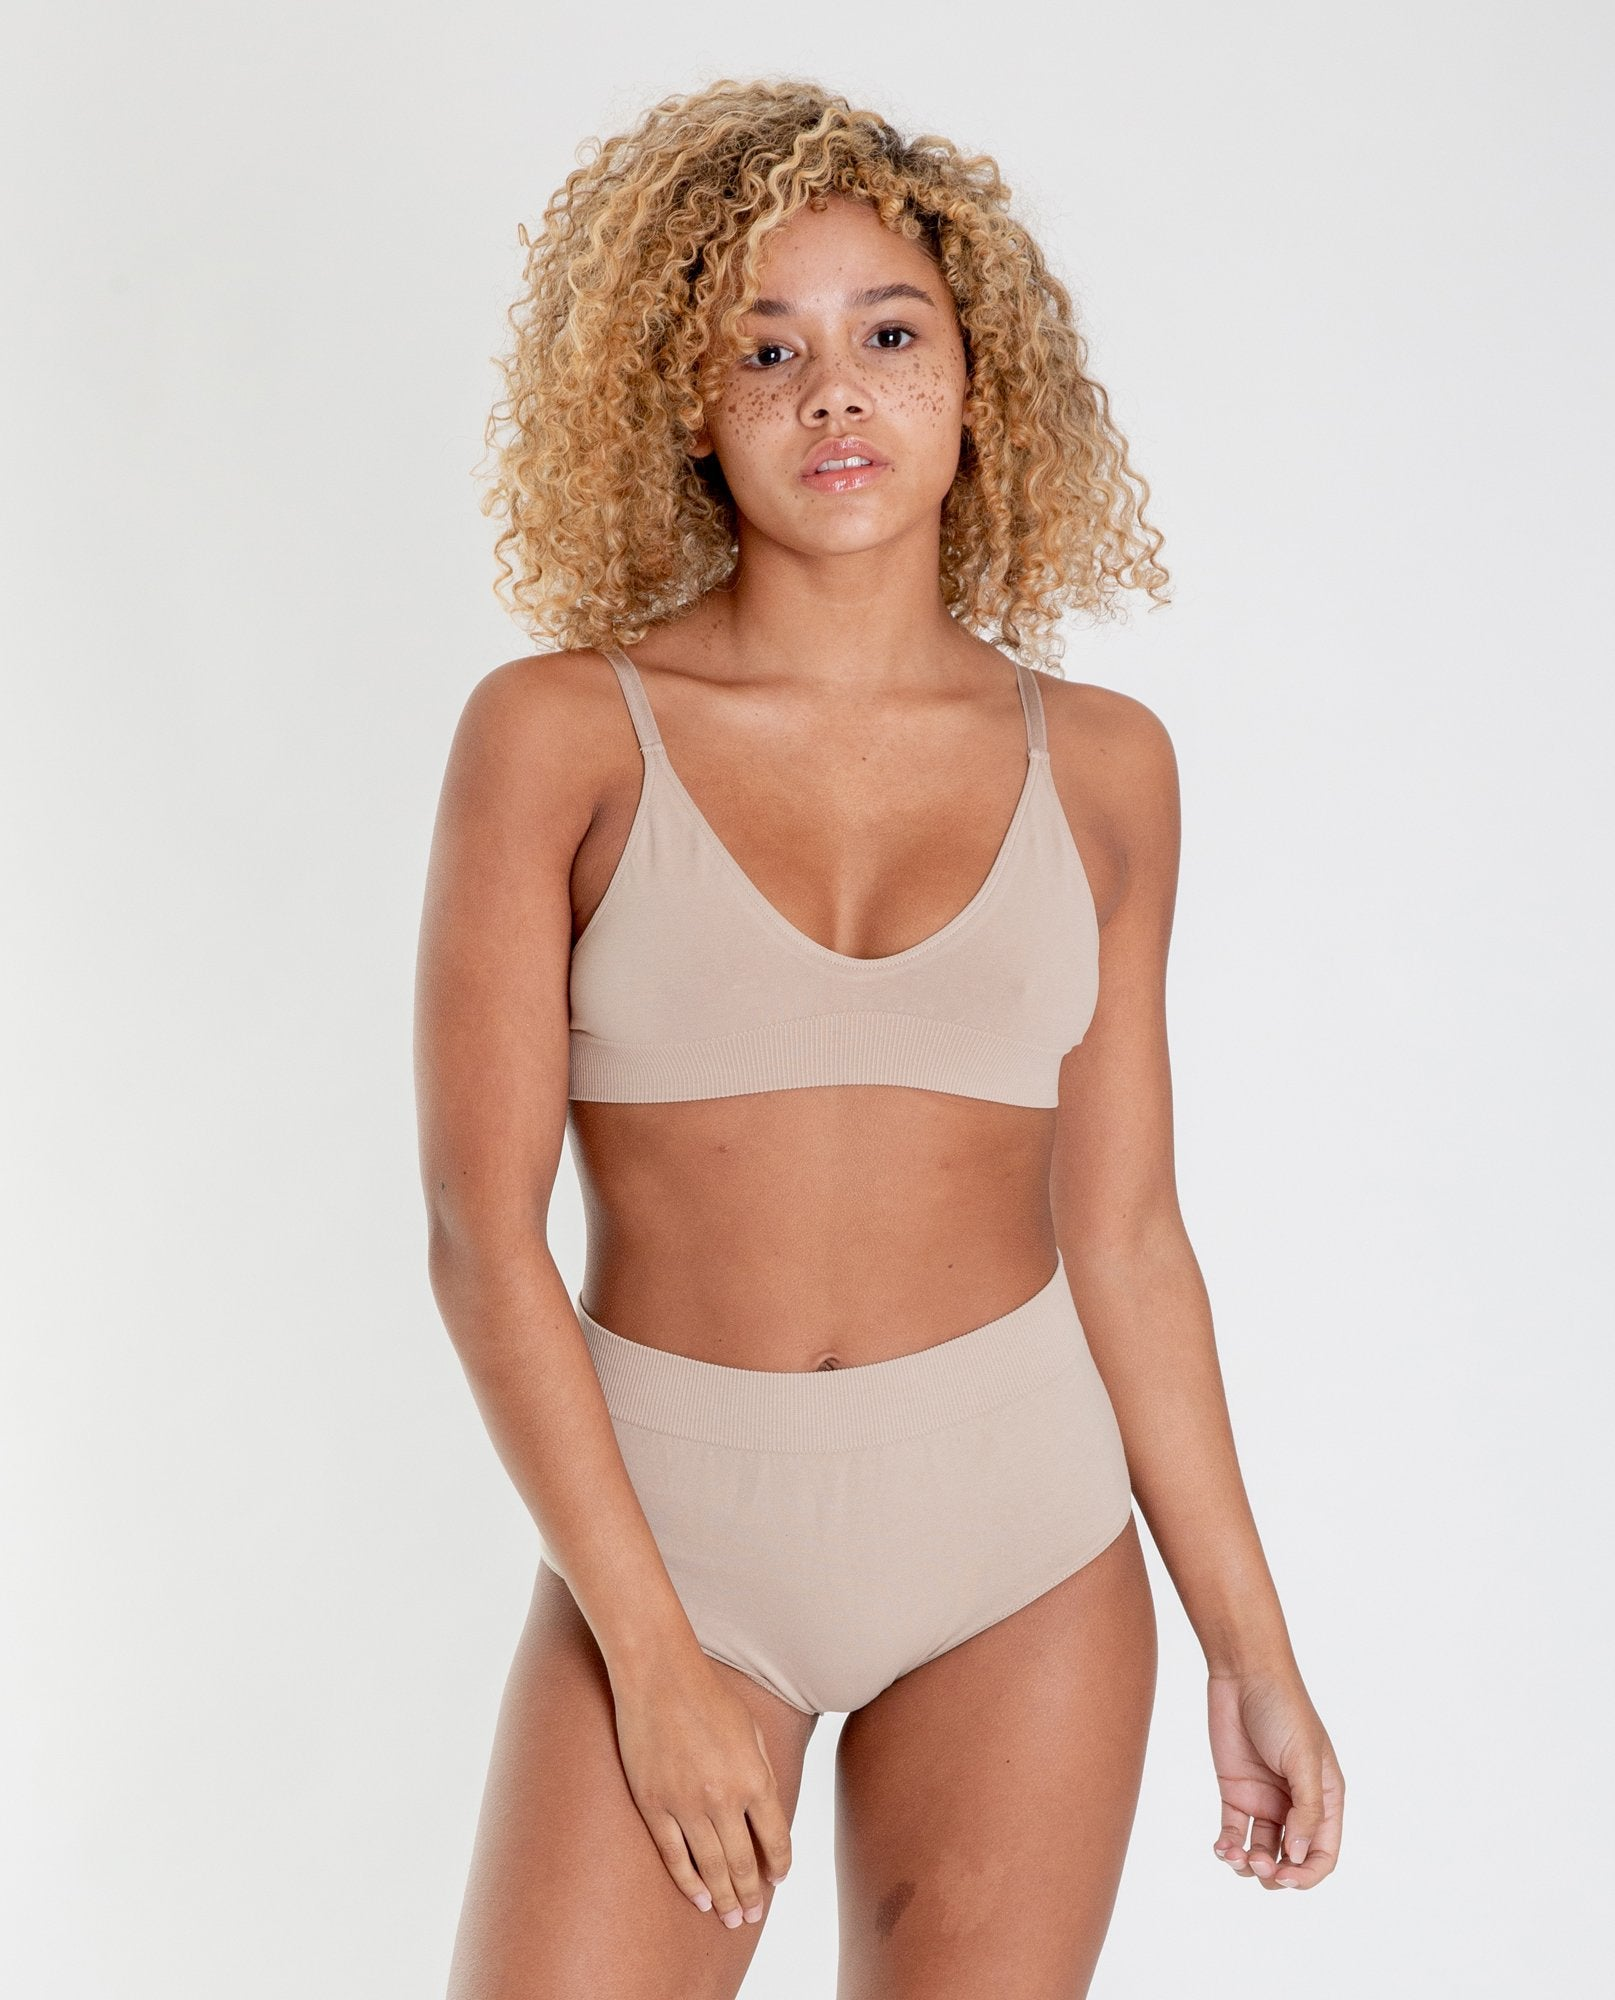 ILZE Organic Cotton Bra In Nude-beaumontorganic-superbulky